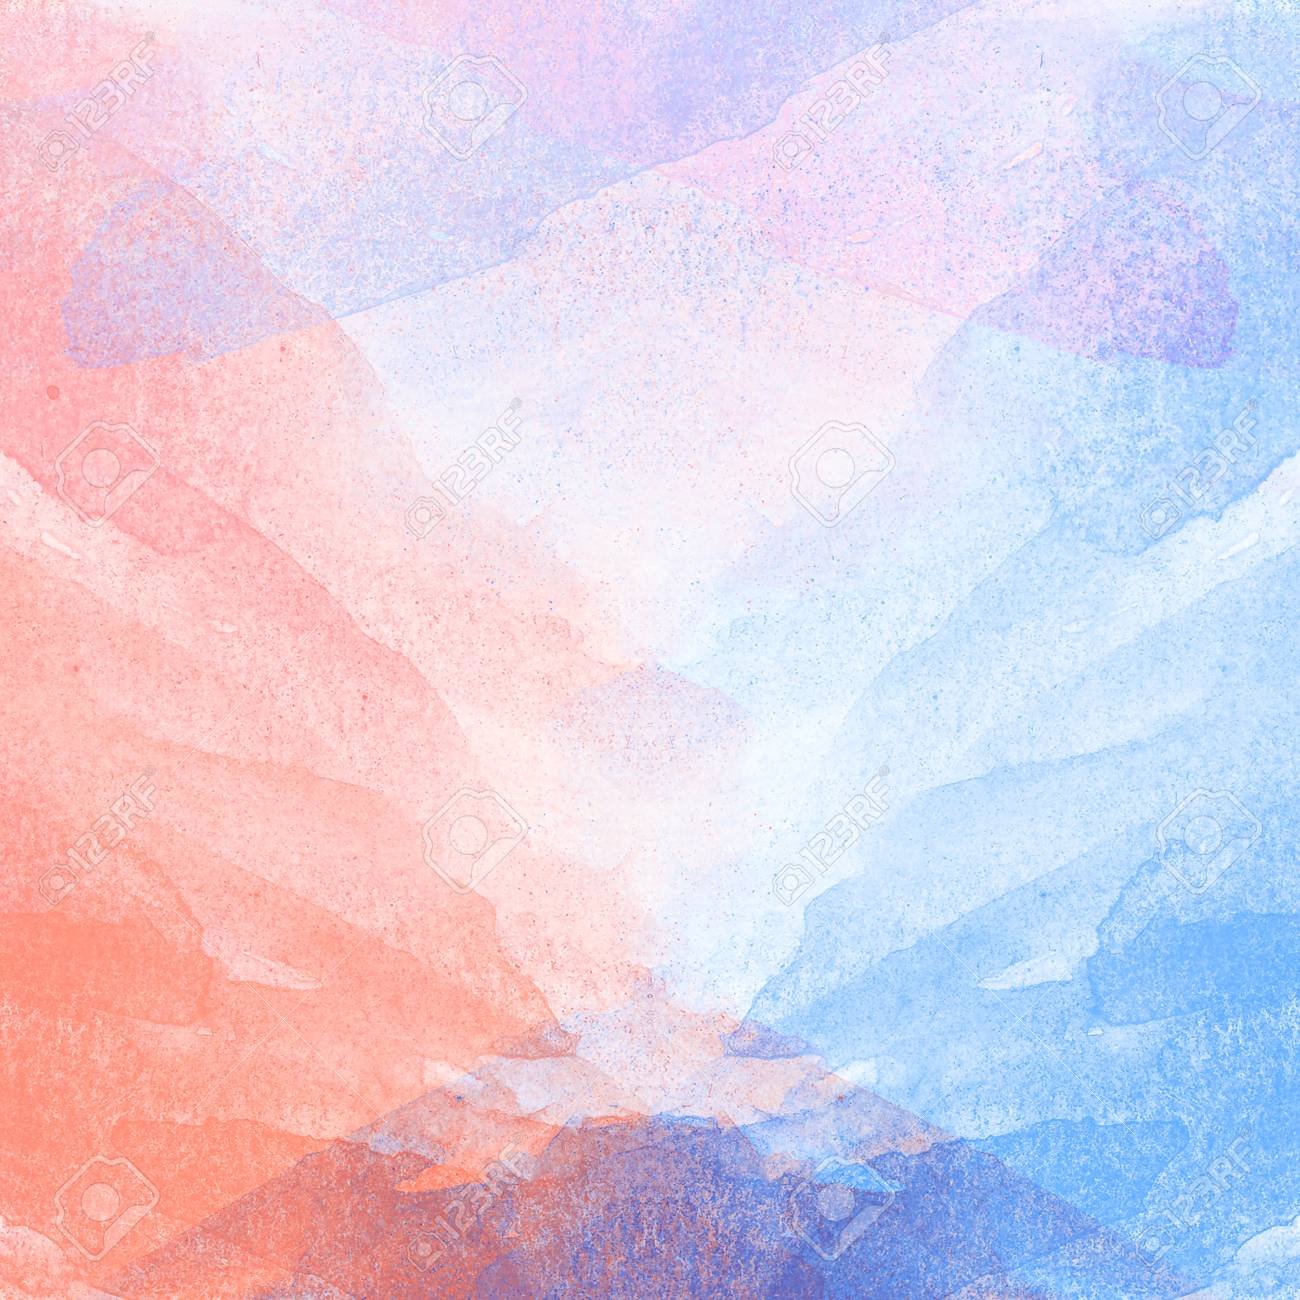 Abstract Colorful Watercolor Painting Texture Background For Stock